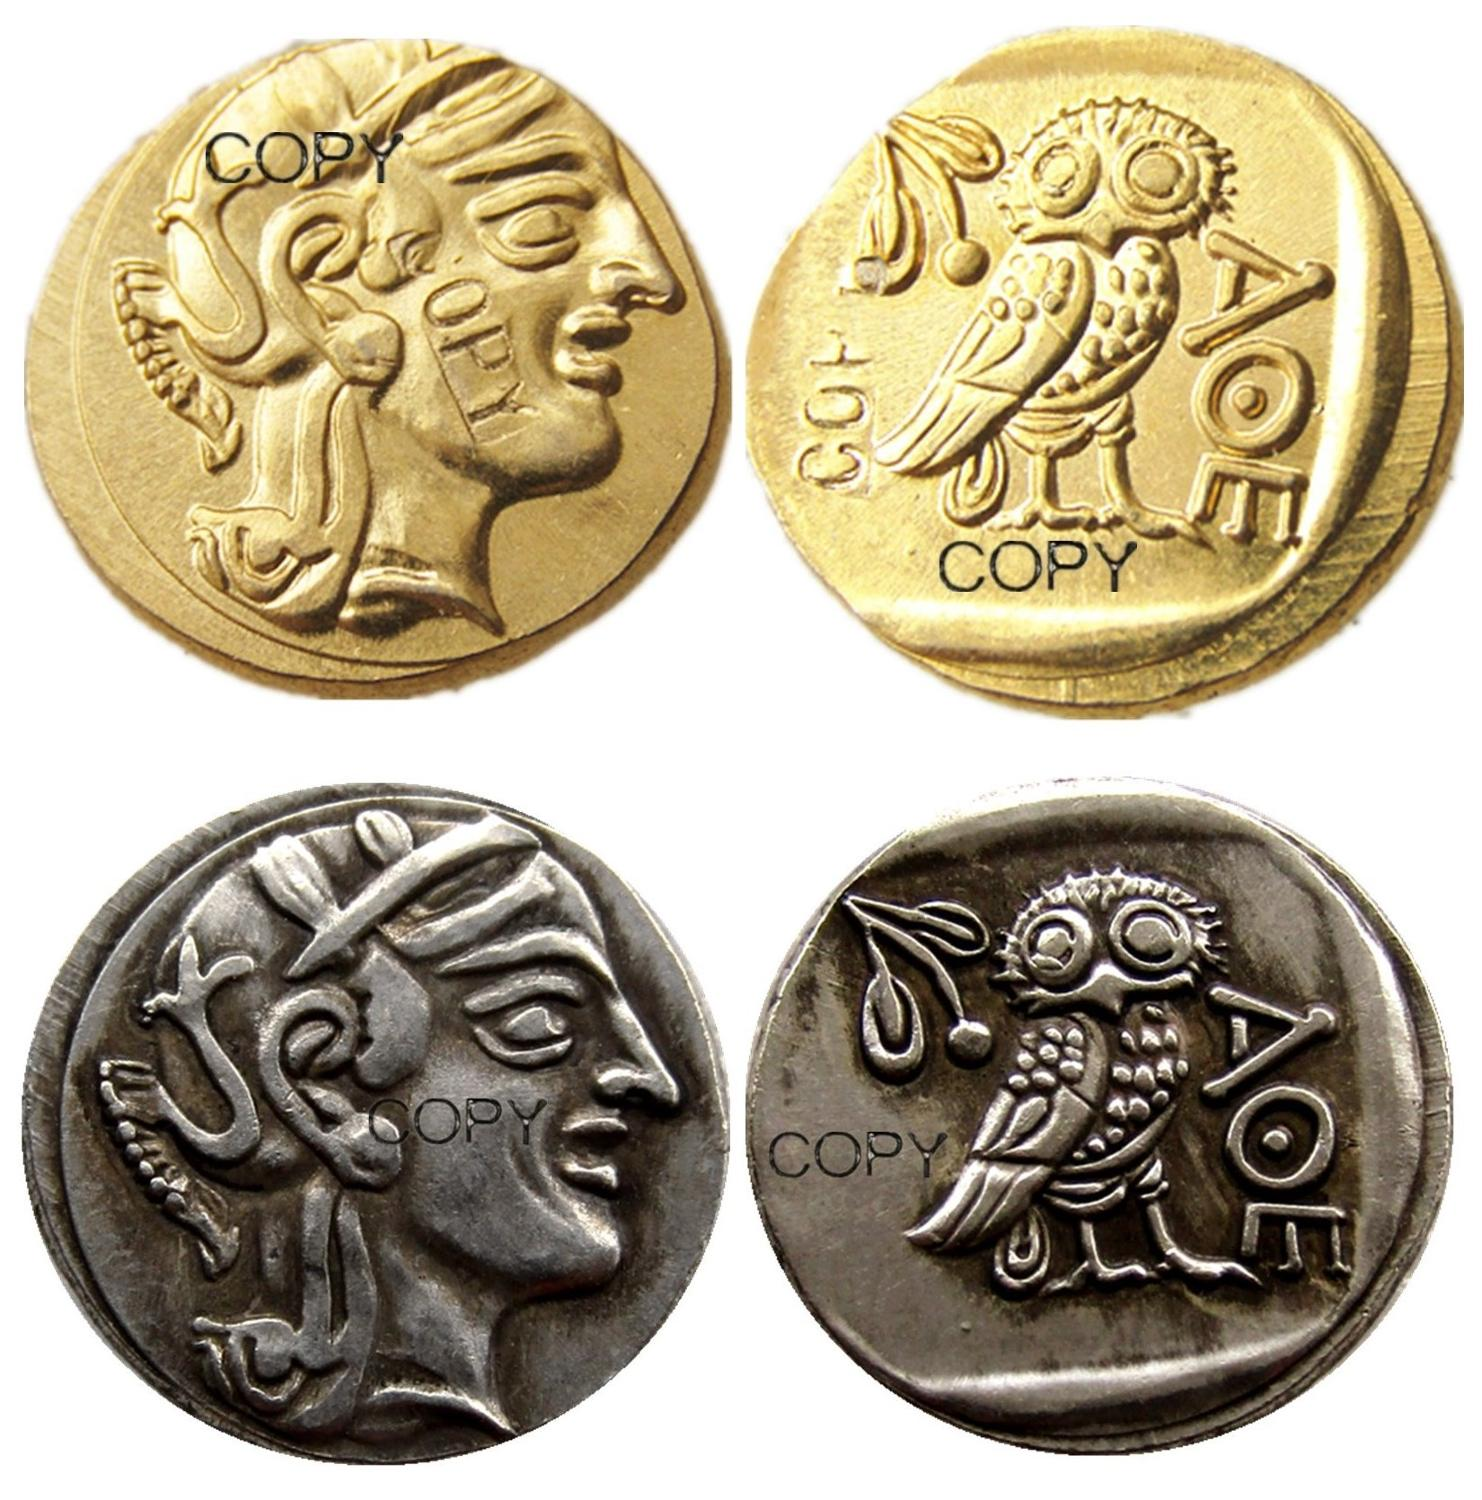 G(02)Ancient Athens Greek gold Drachm - Atena Greece Owl Drachma Gold Plated/Silver Plated copy coins